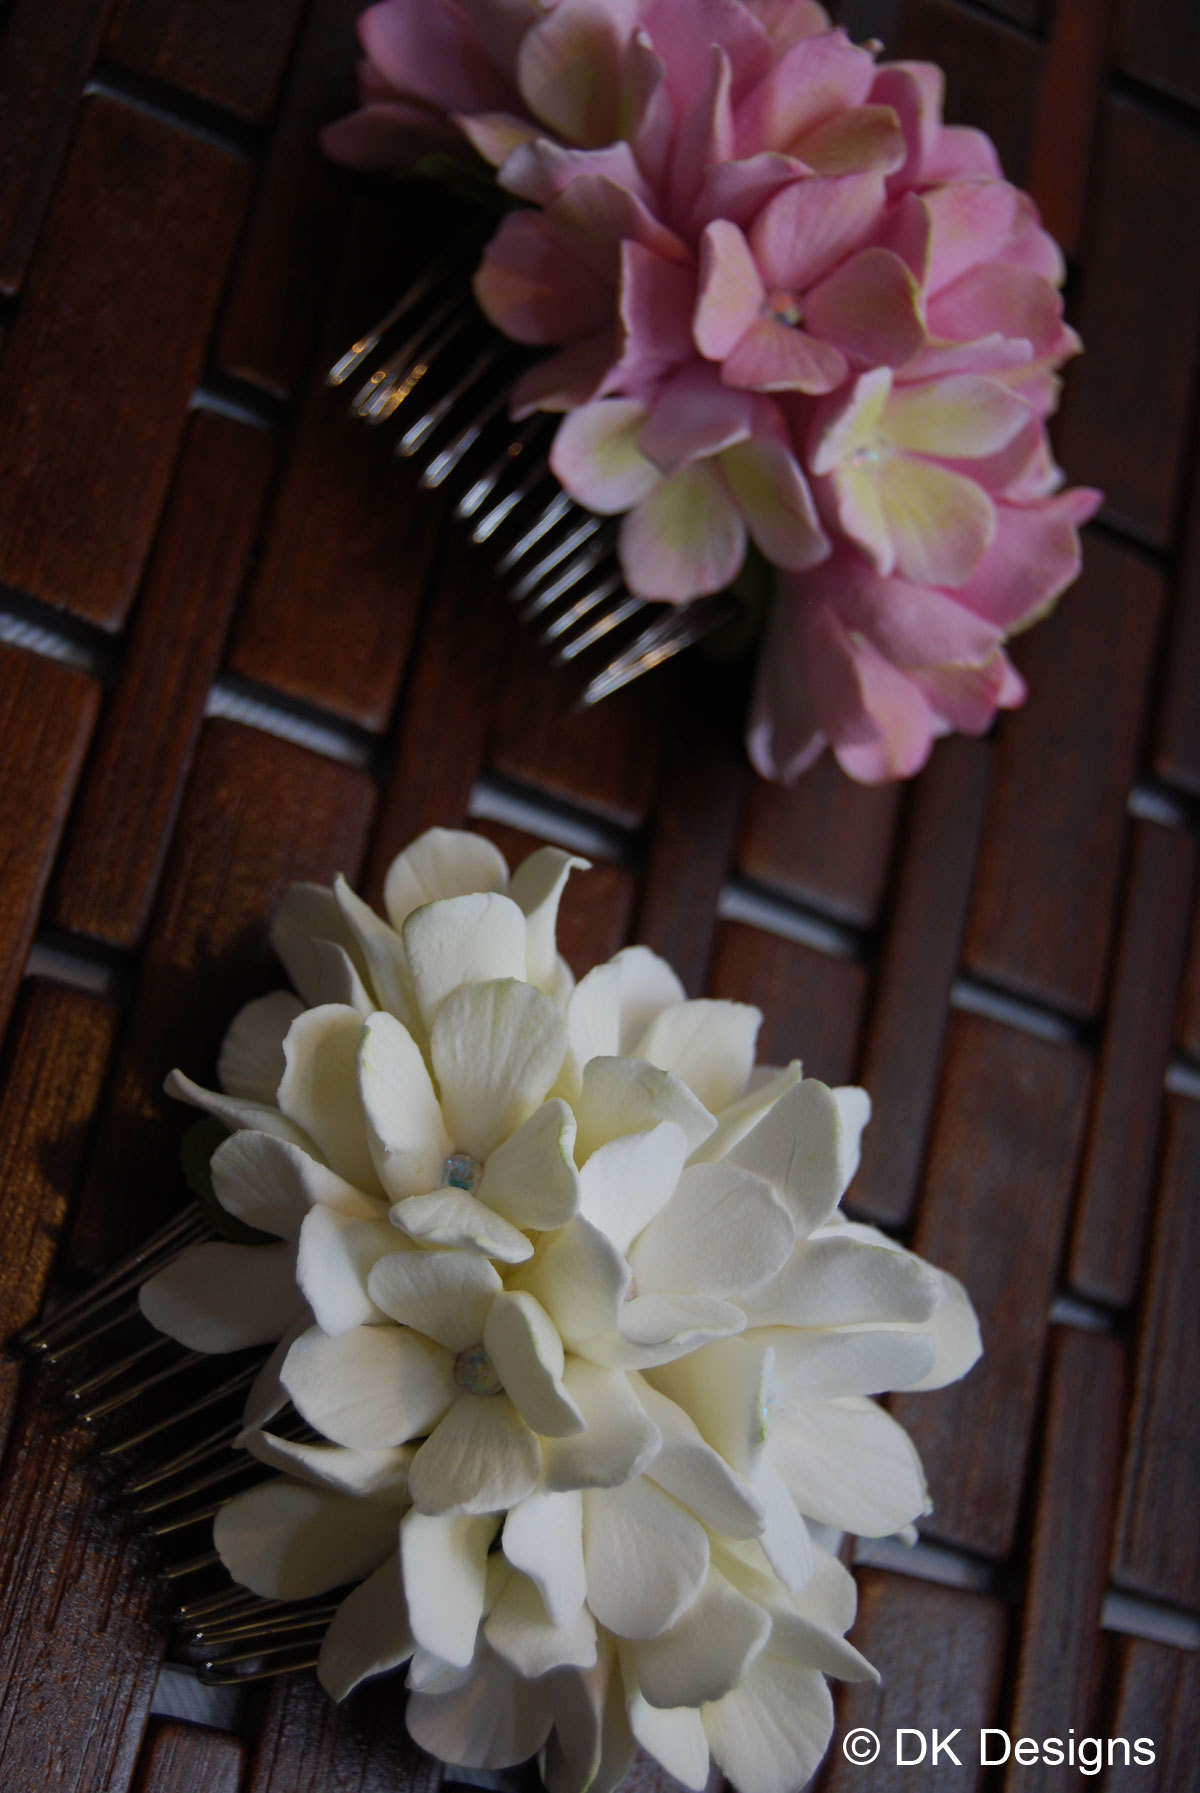 Beauty, Flowers & Decor, Comb, Accessories, Flowers, Party, Hair, Bridal, For, Combs, Clay, Dk designs